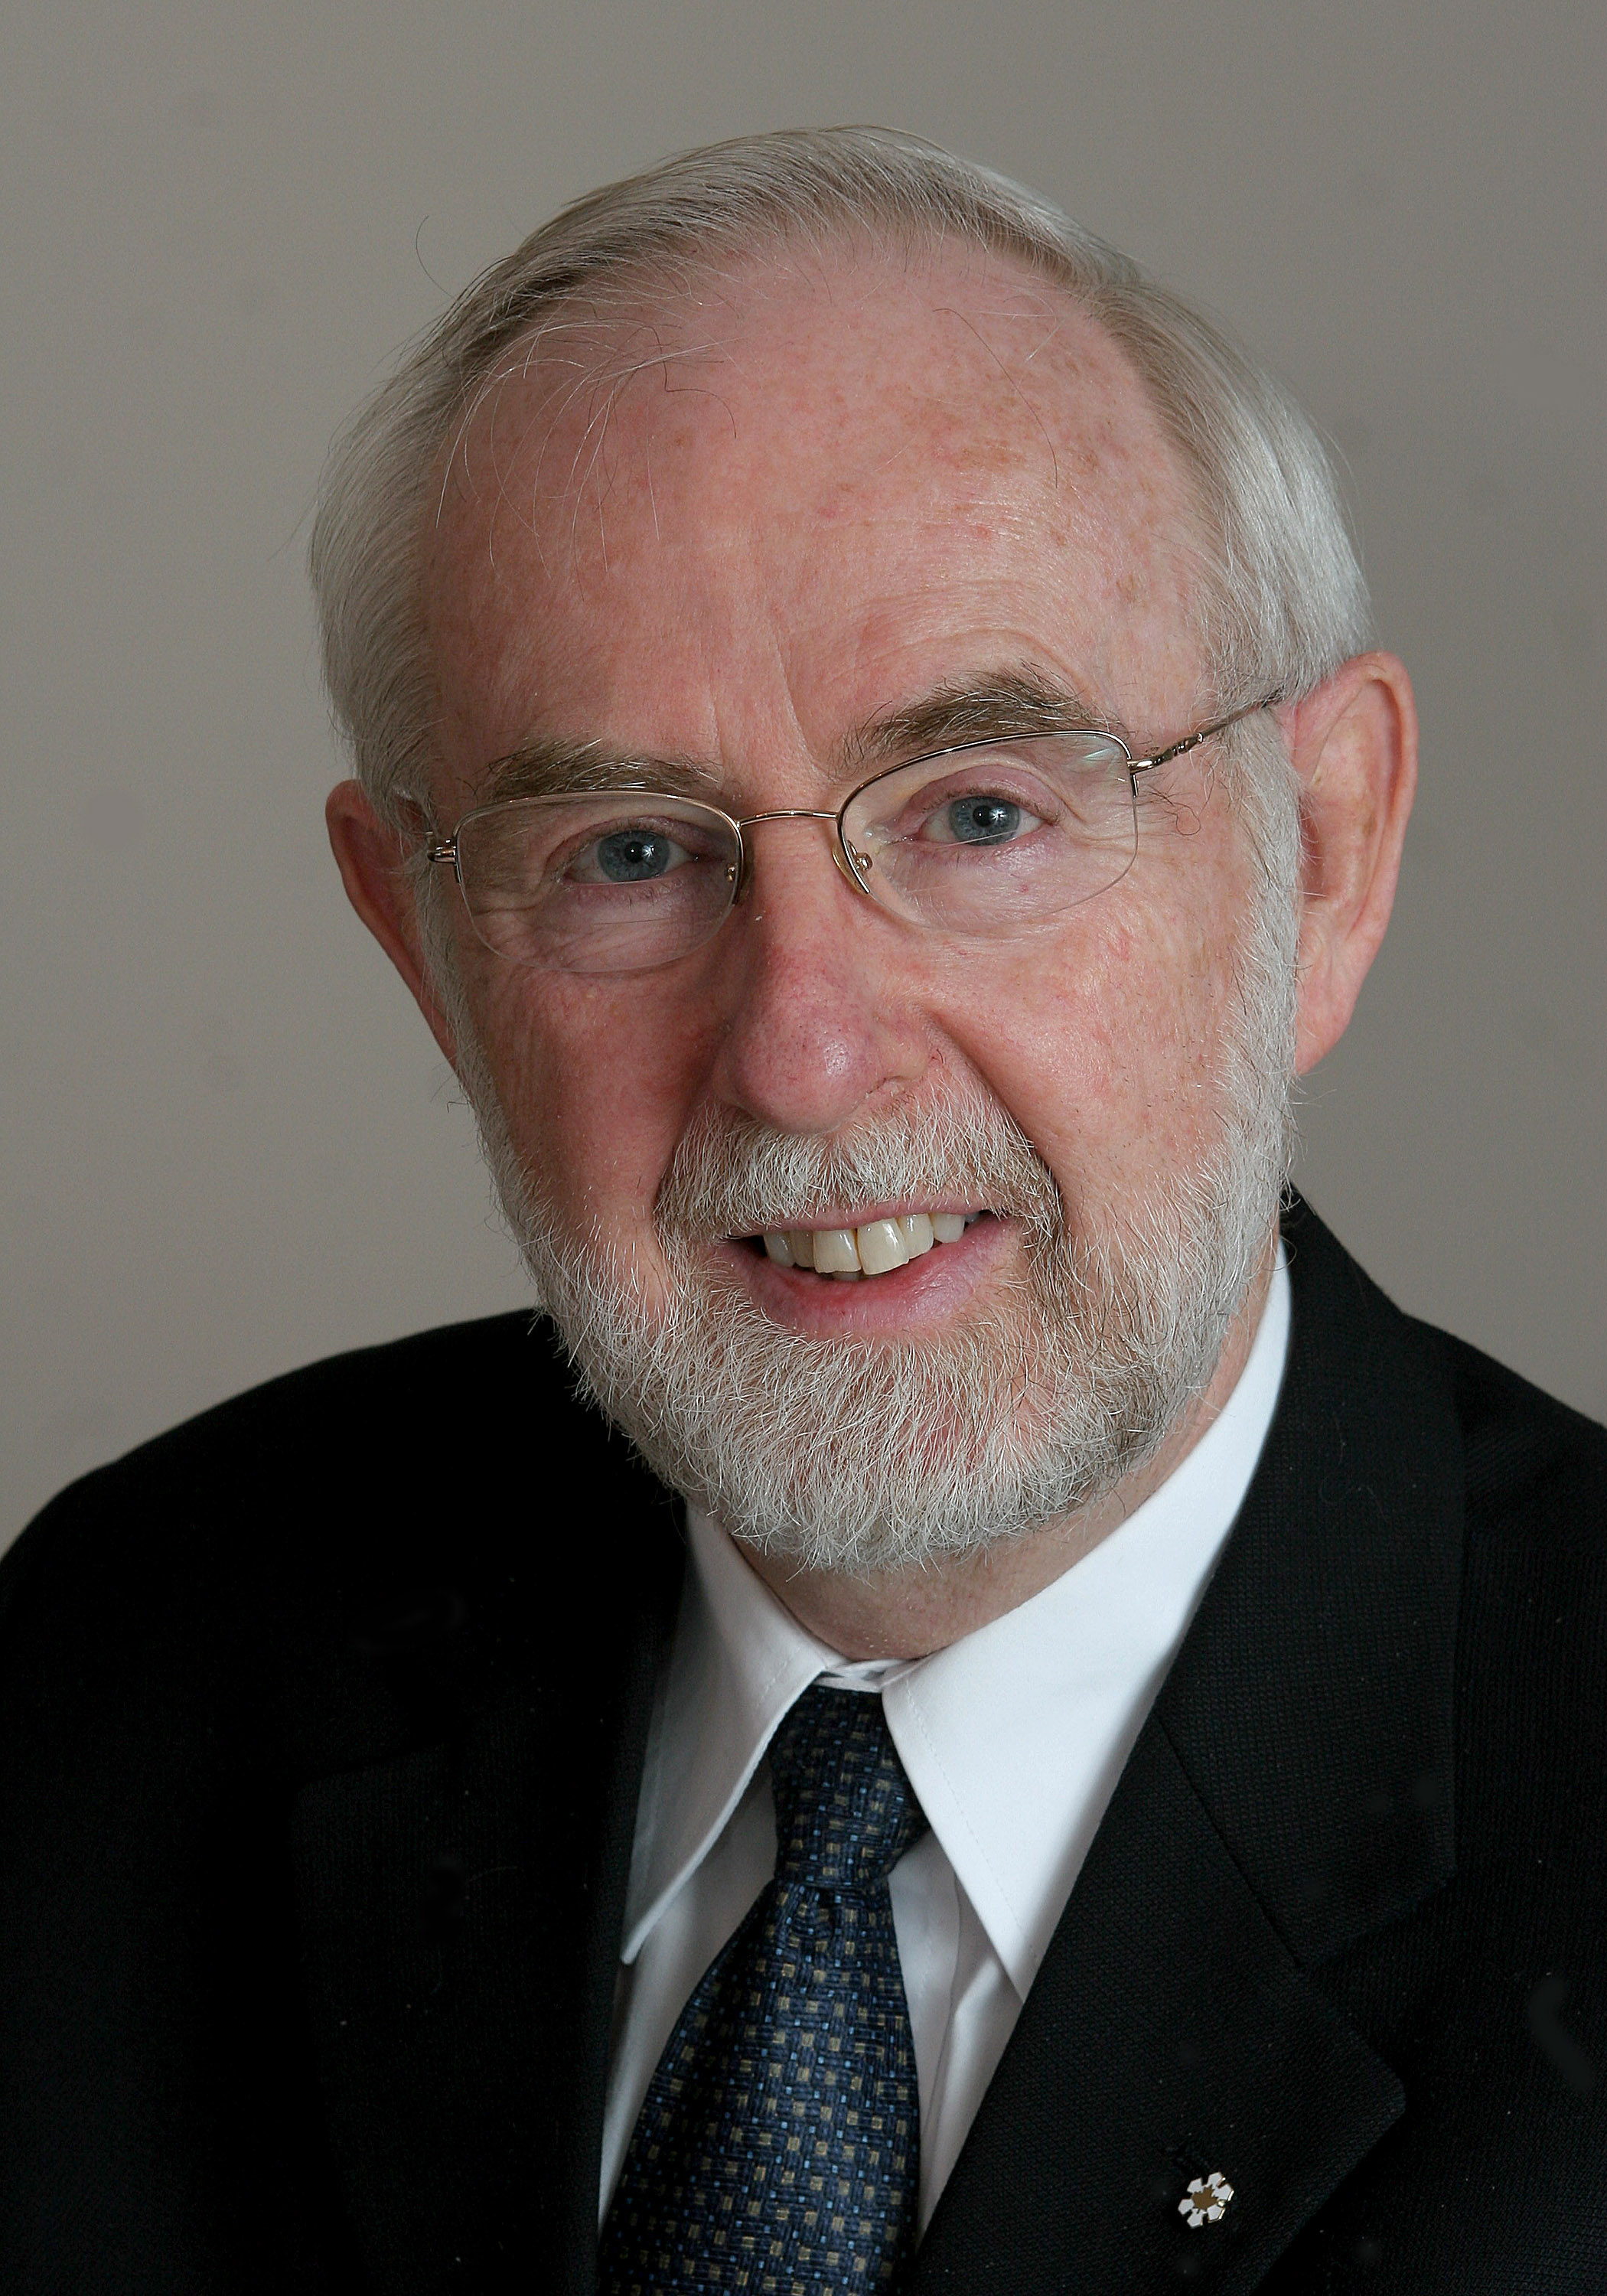 Arthur McDonald is a Professor Emeritus at Queen's University, Director of the Sudbury Neutrino Observatory (SNO), and Co-recipient of the 2015 Nobel Prize in Physics.